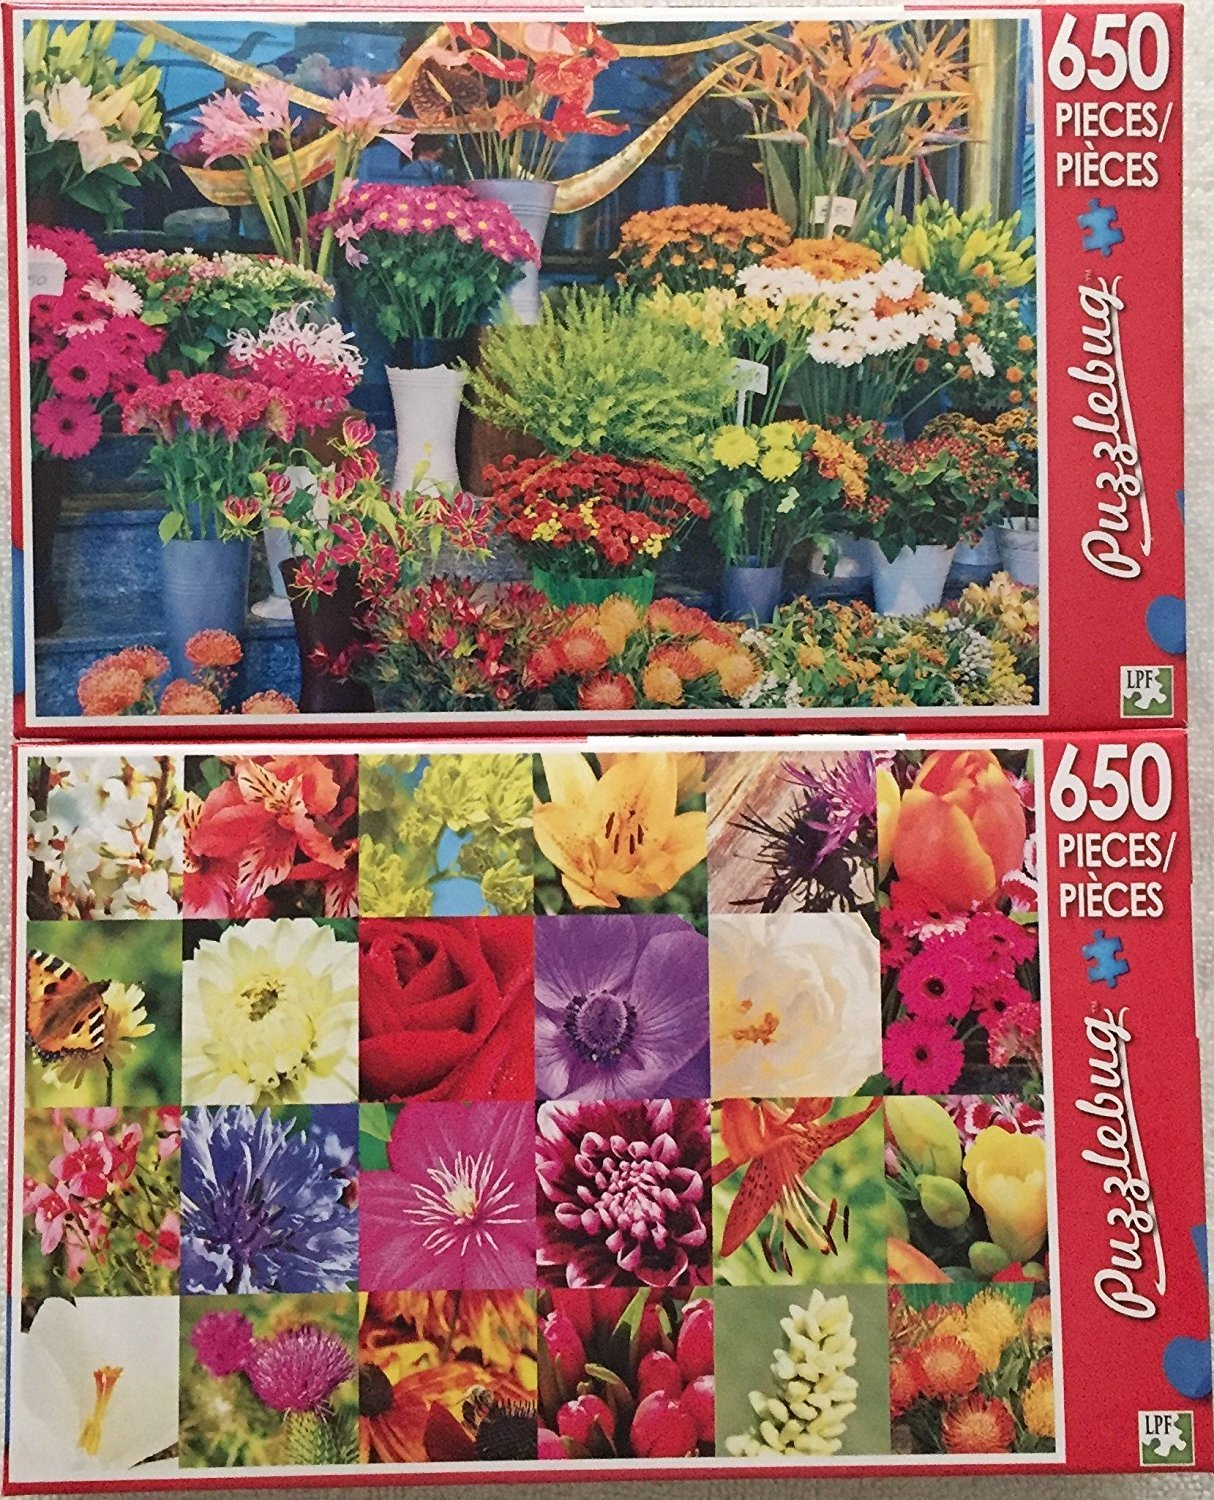 Bundle of 2 Puzzlebug 650 Piece Puzzles by LPF: Beautiful Market Flowers ~ Summer Flowers Collage